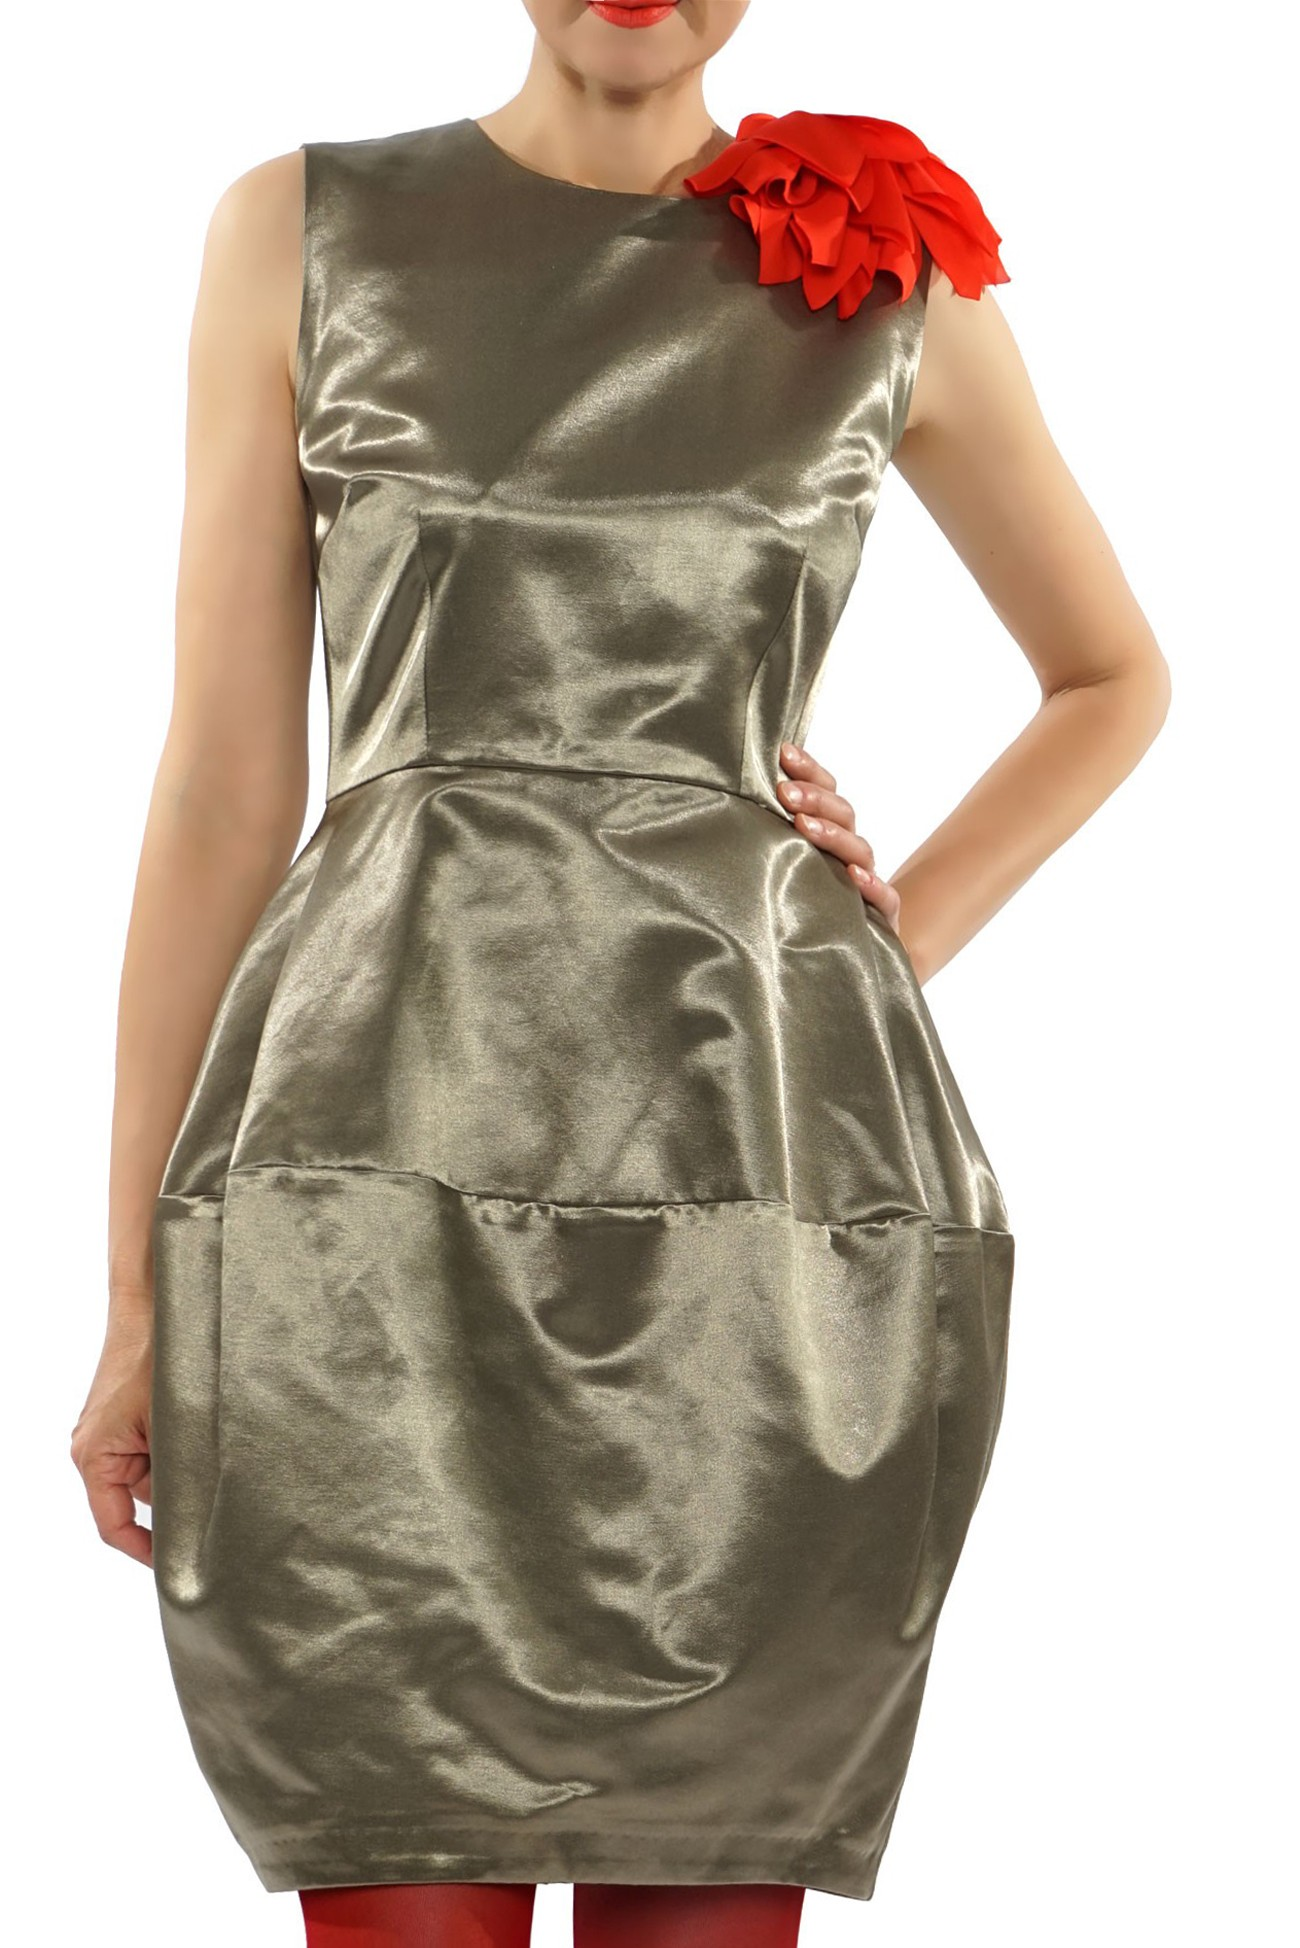 Olive dress with accessory